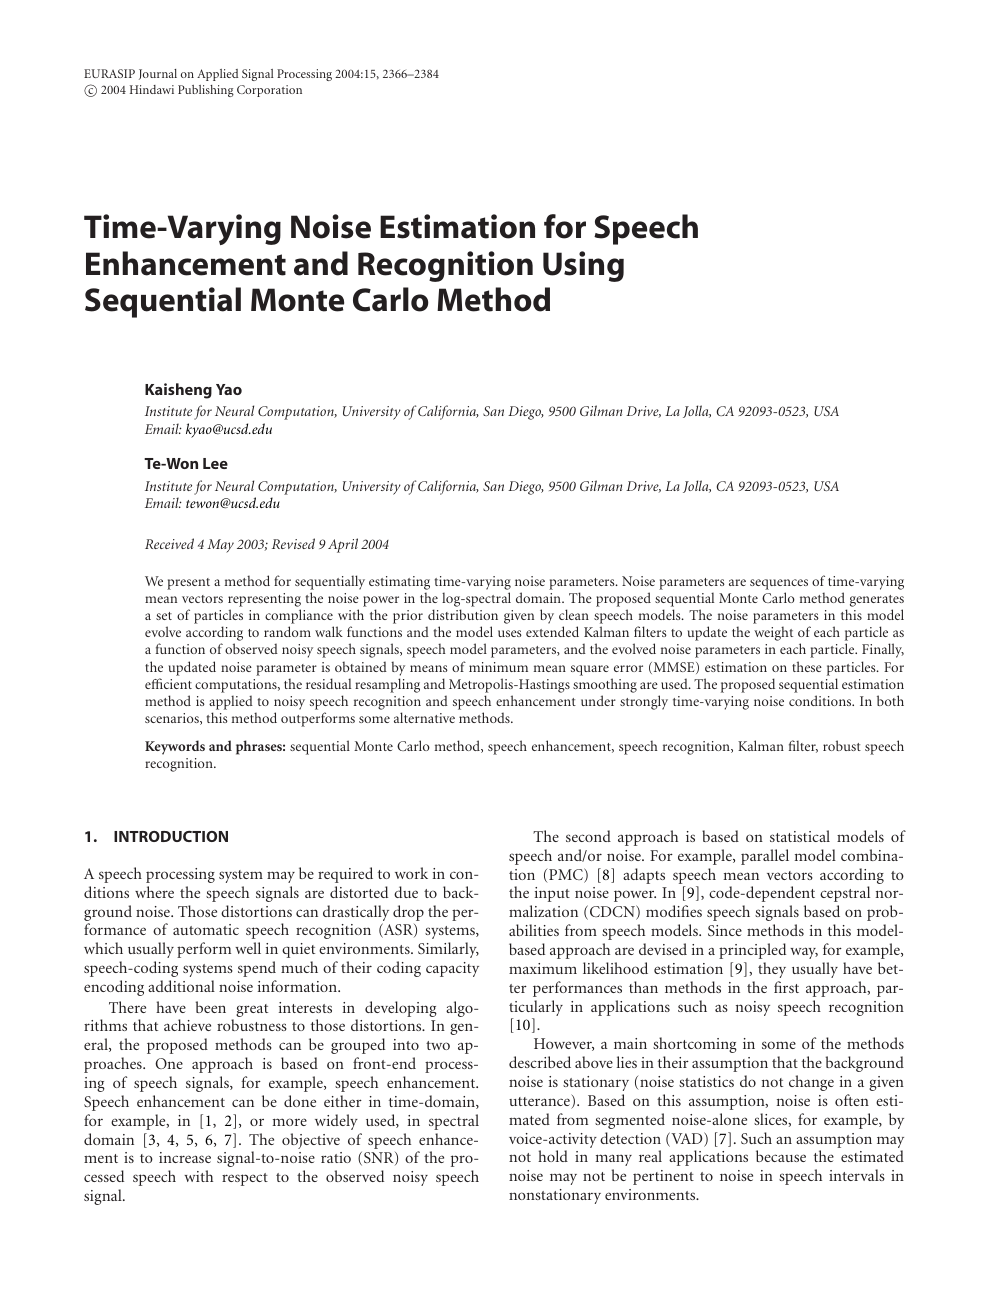 Time-Varying Noise Estimation for Speech Enhancement and Recognition